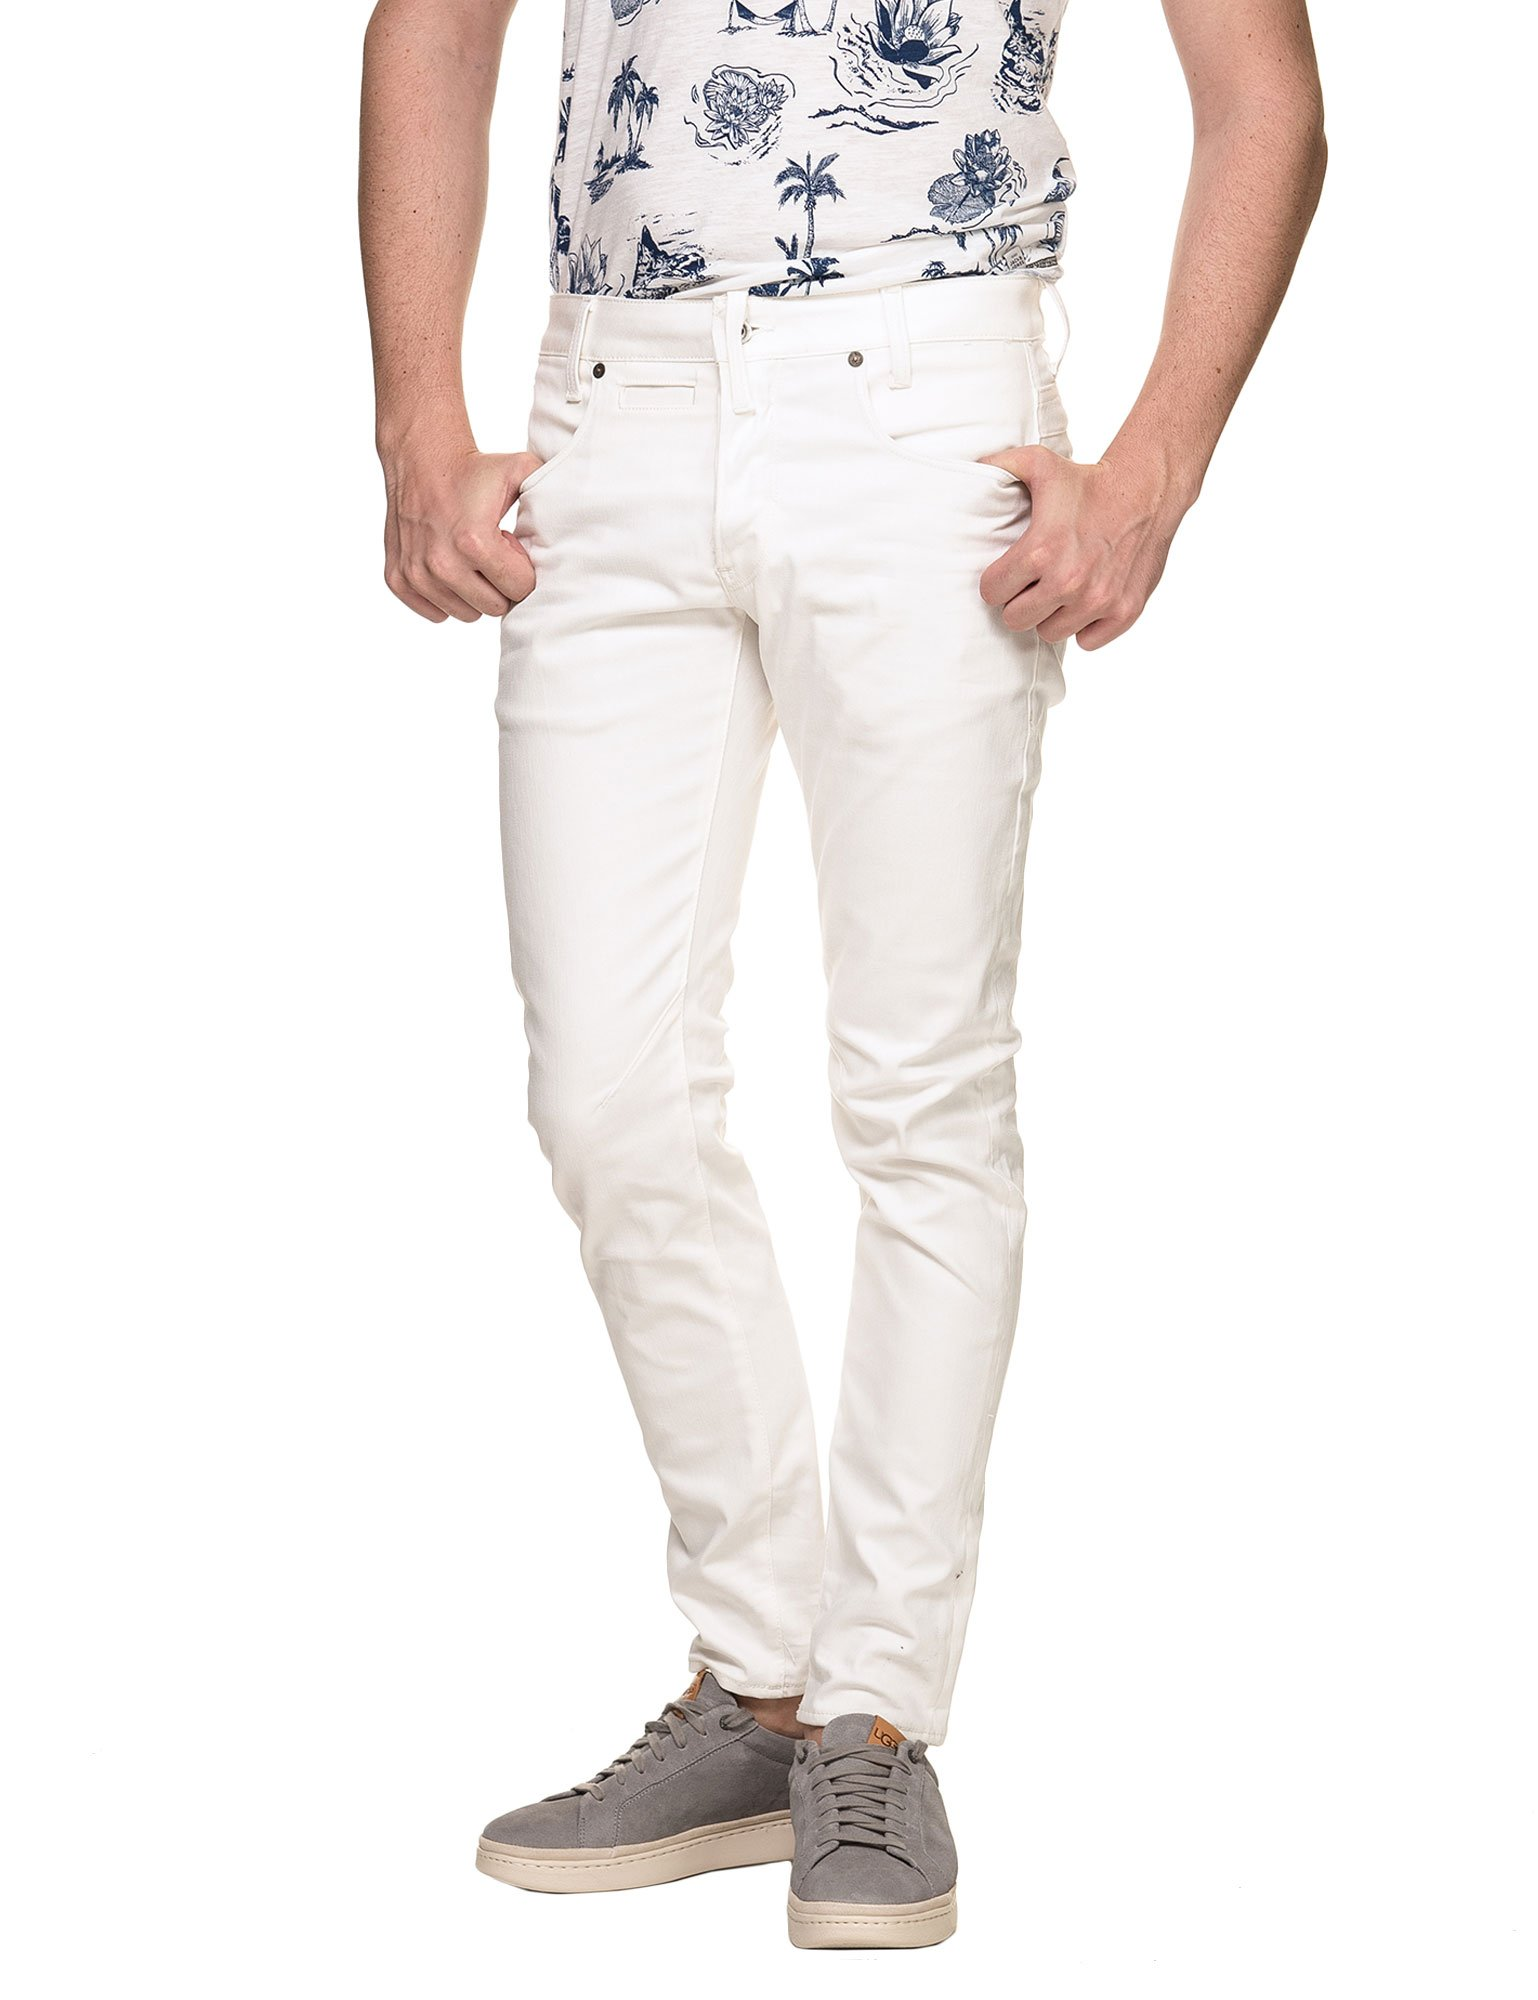 G-STAR Men's D-STAQ 5-Pkt Slim Pants White in Size 31W 32L